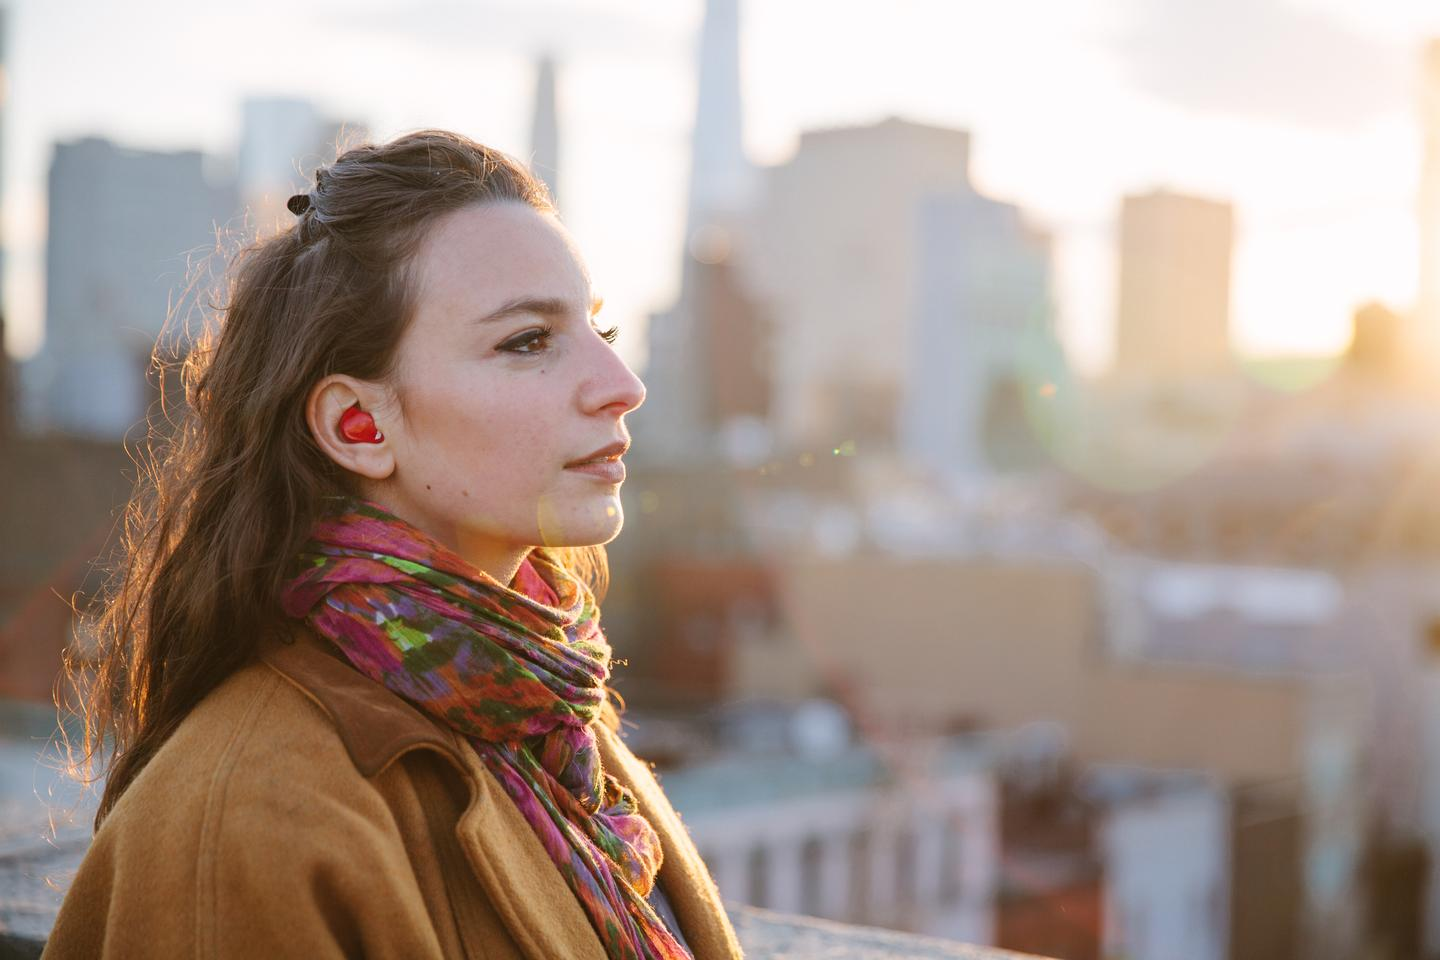 The Pilot earpiece: bringing the idea of the Babel fish to life